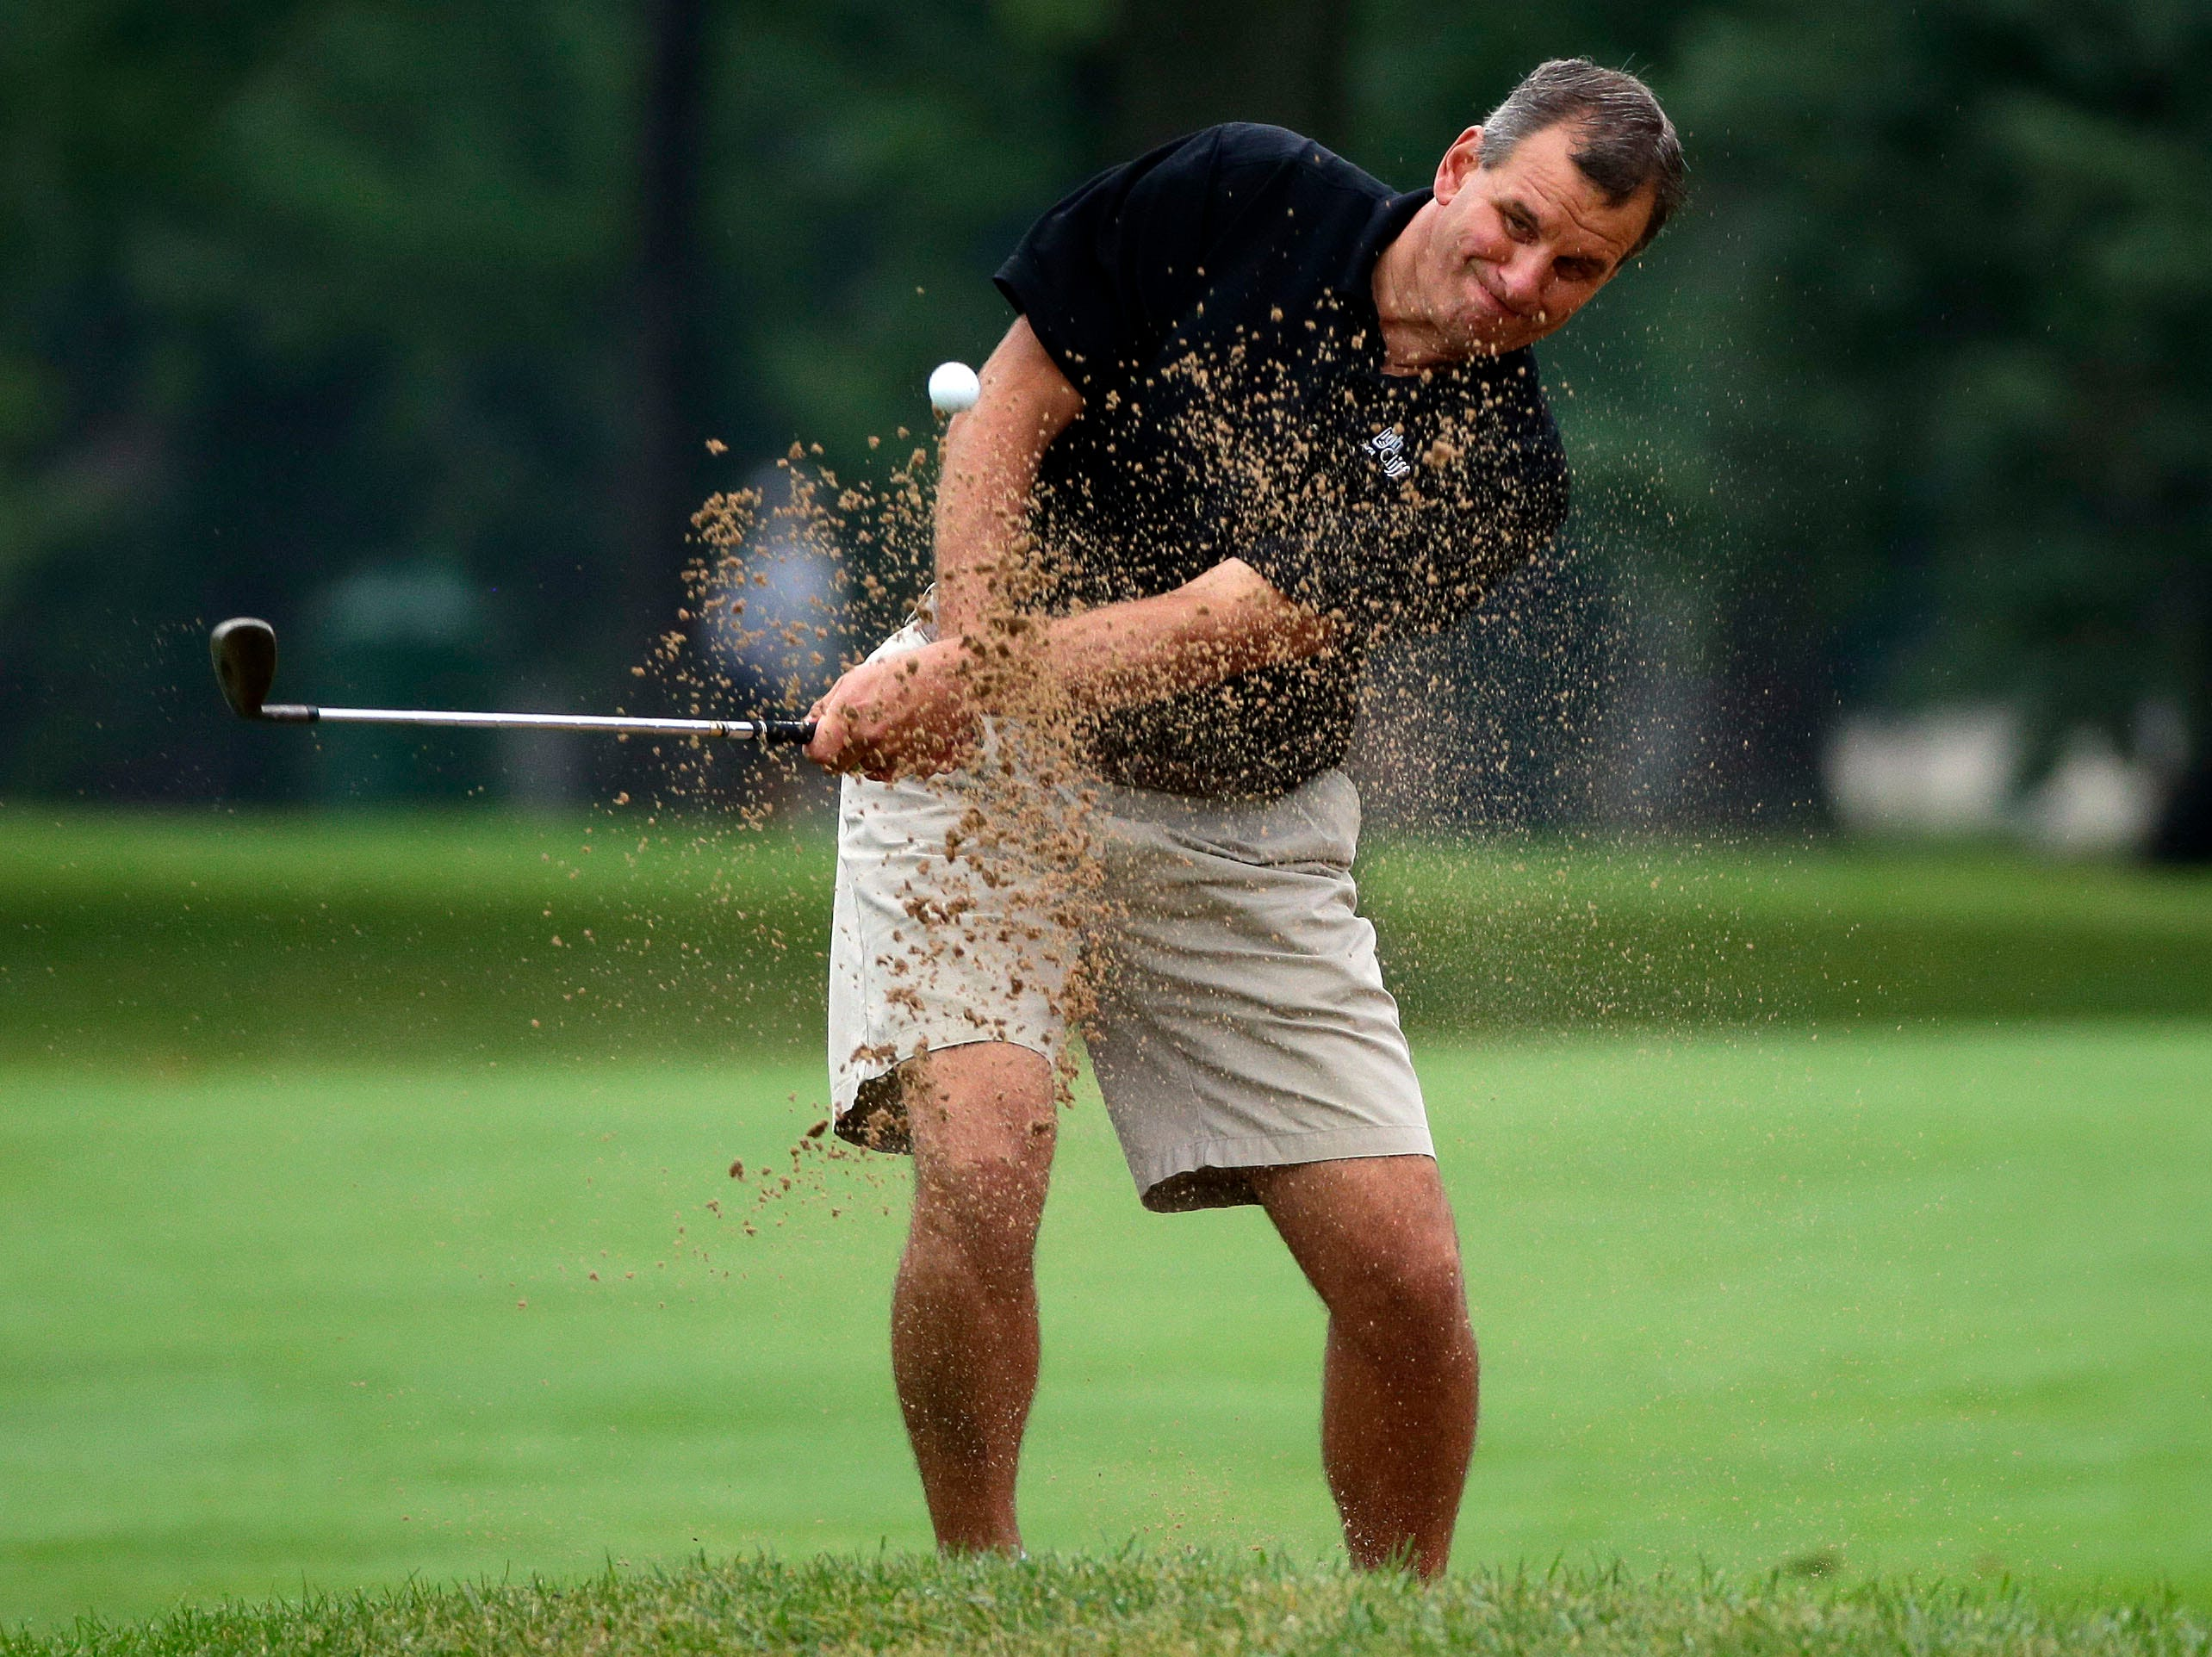 Mike Schlaak hits out of the sand as the final round of the Fox Cities Amateur golf tournament Sunday, July 22, 2018, at Reid Golf Course in Appleton, Wis.